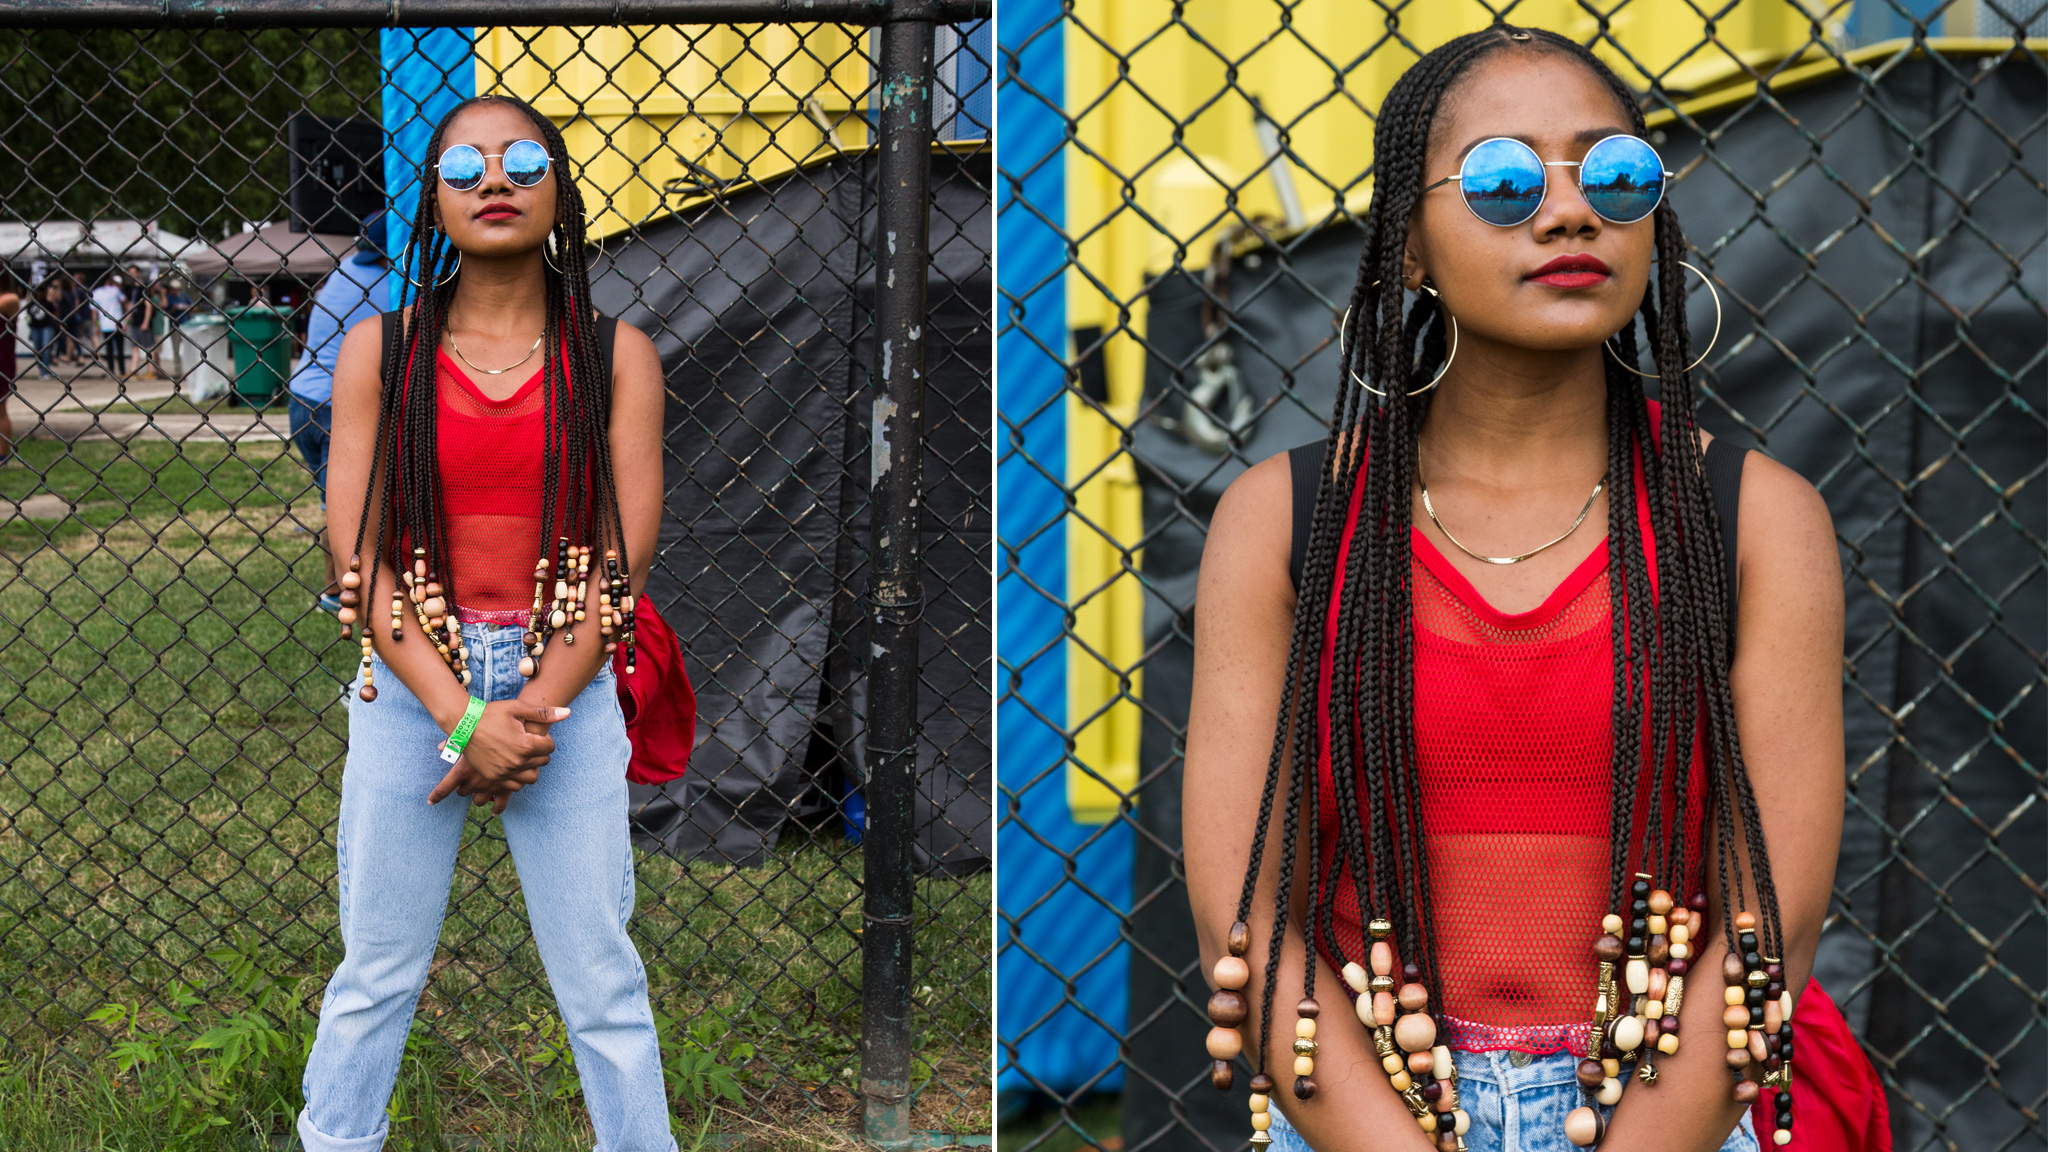 The best fashion at Pitchfork Music Festival 2017